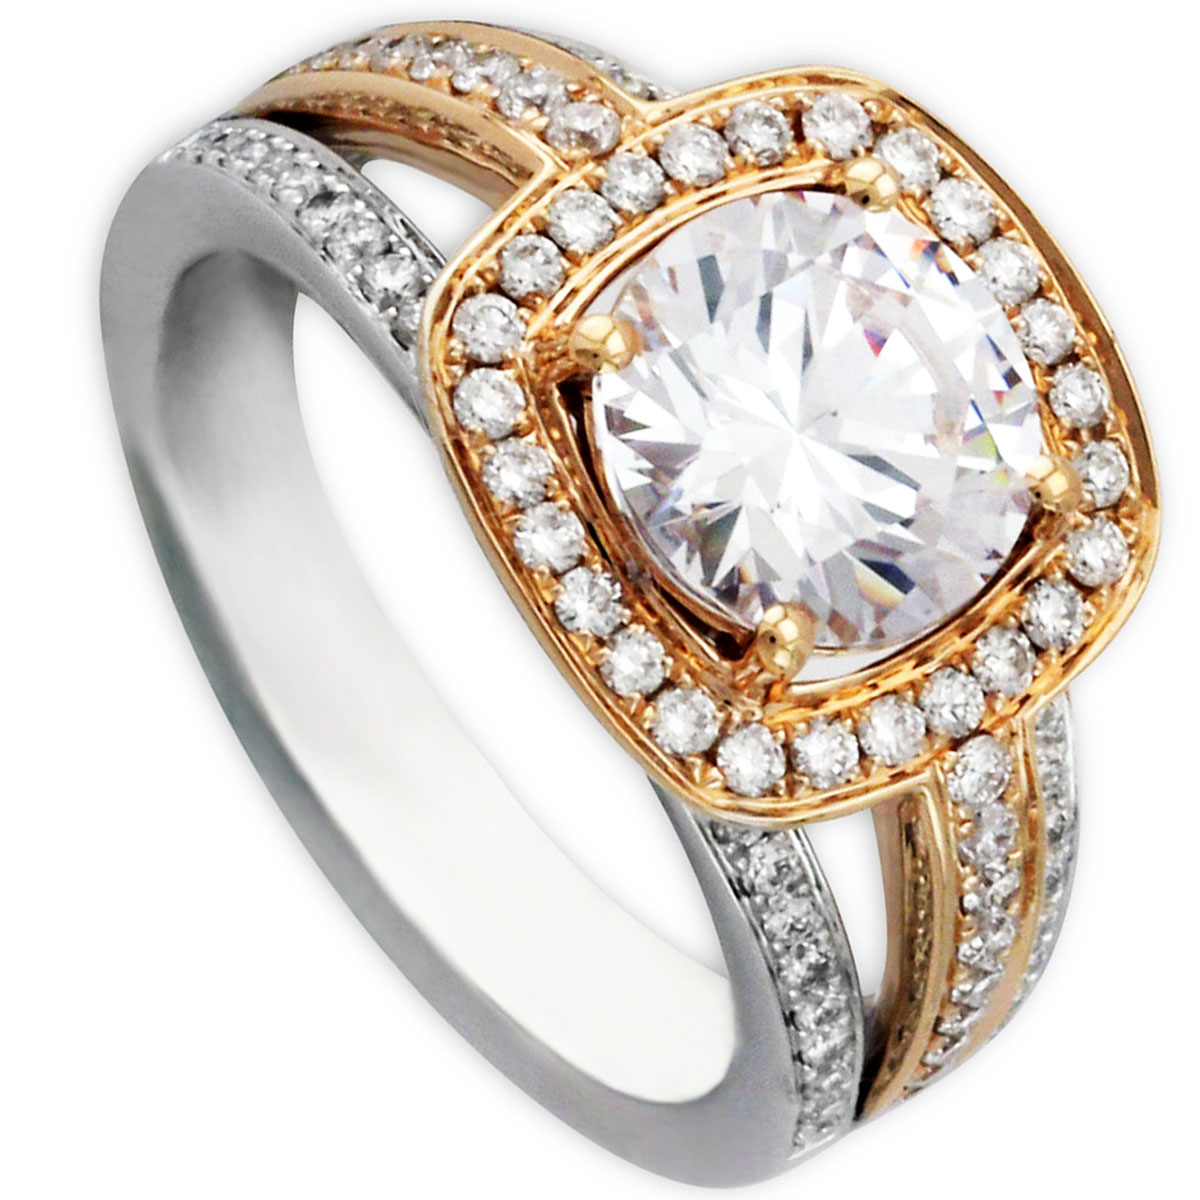 334693-Frederic Sage Bridal Ring